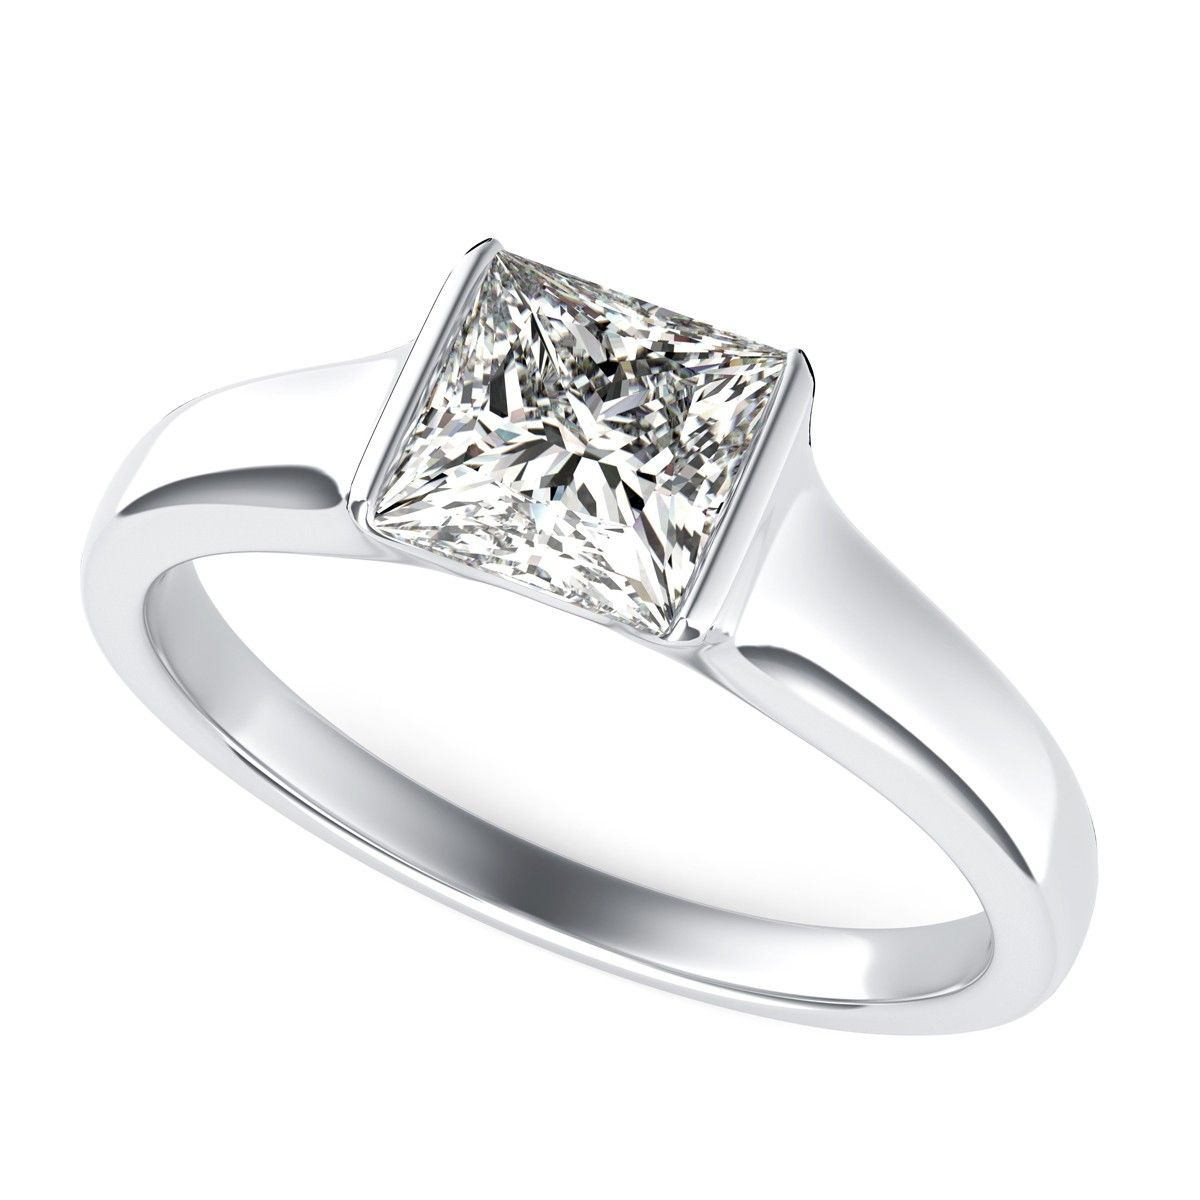 tension set engagement ring with princess cut diamond by. Black Bedroom Furniture Sets. Home Design Ideas